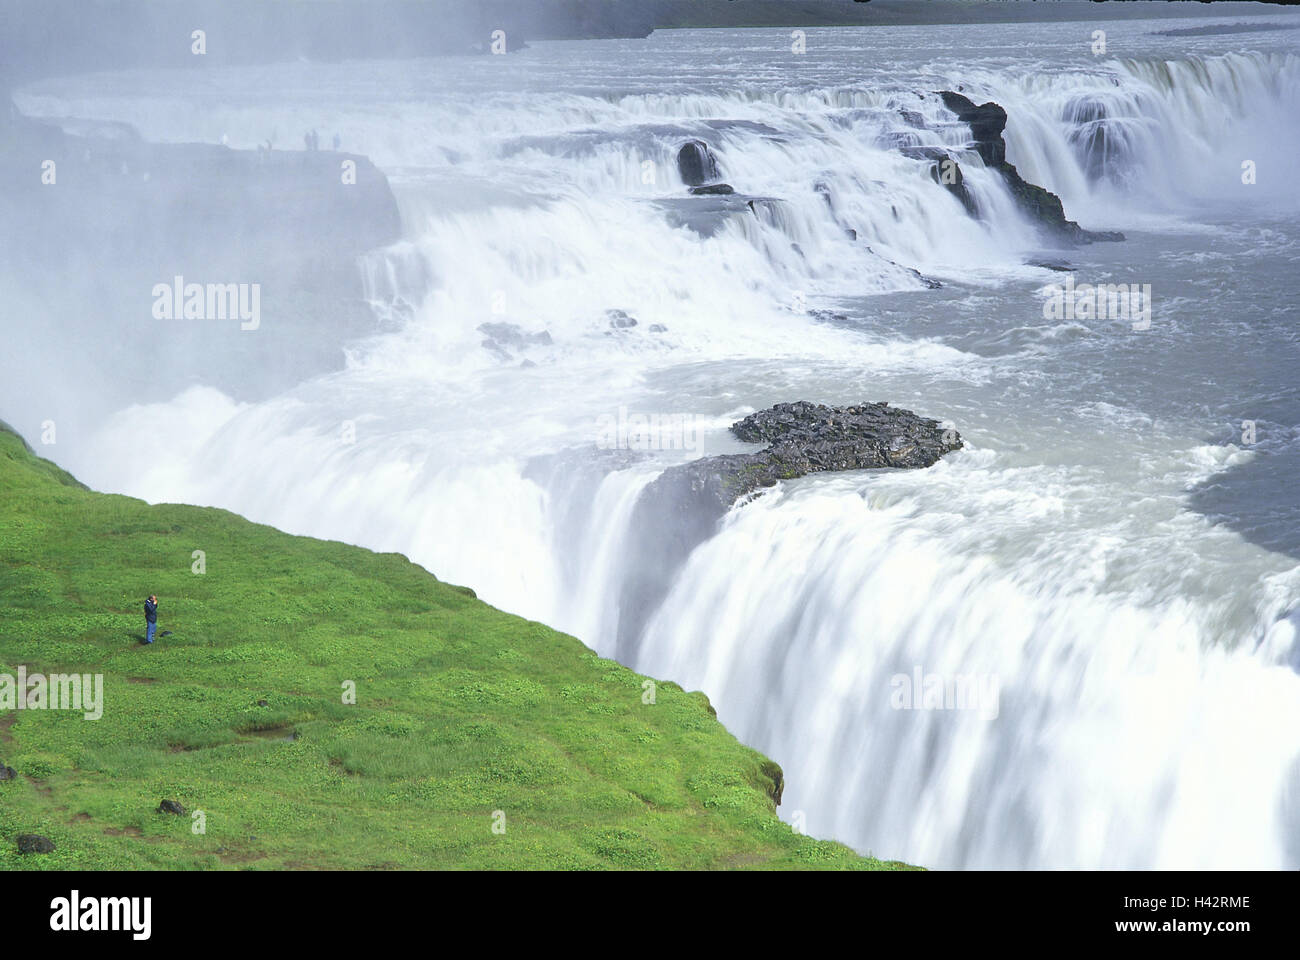 Iceland, Gullfoss, waterfall, tourist, Iceland, island, destination, place of interest, nature, spectacle of nature, - Stock Image